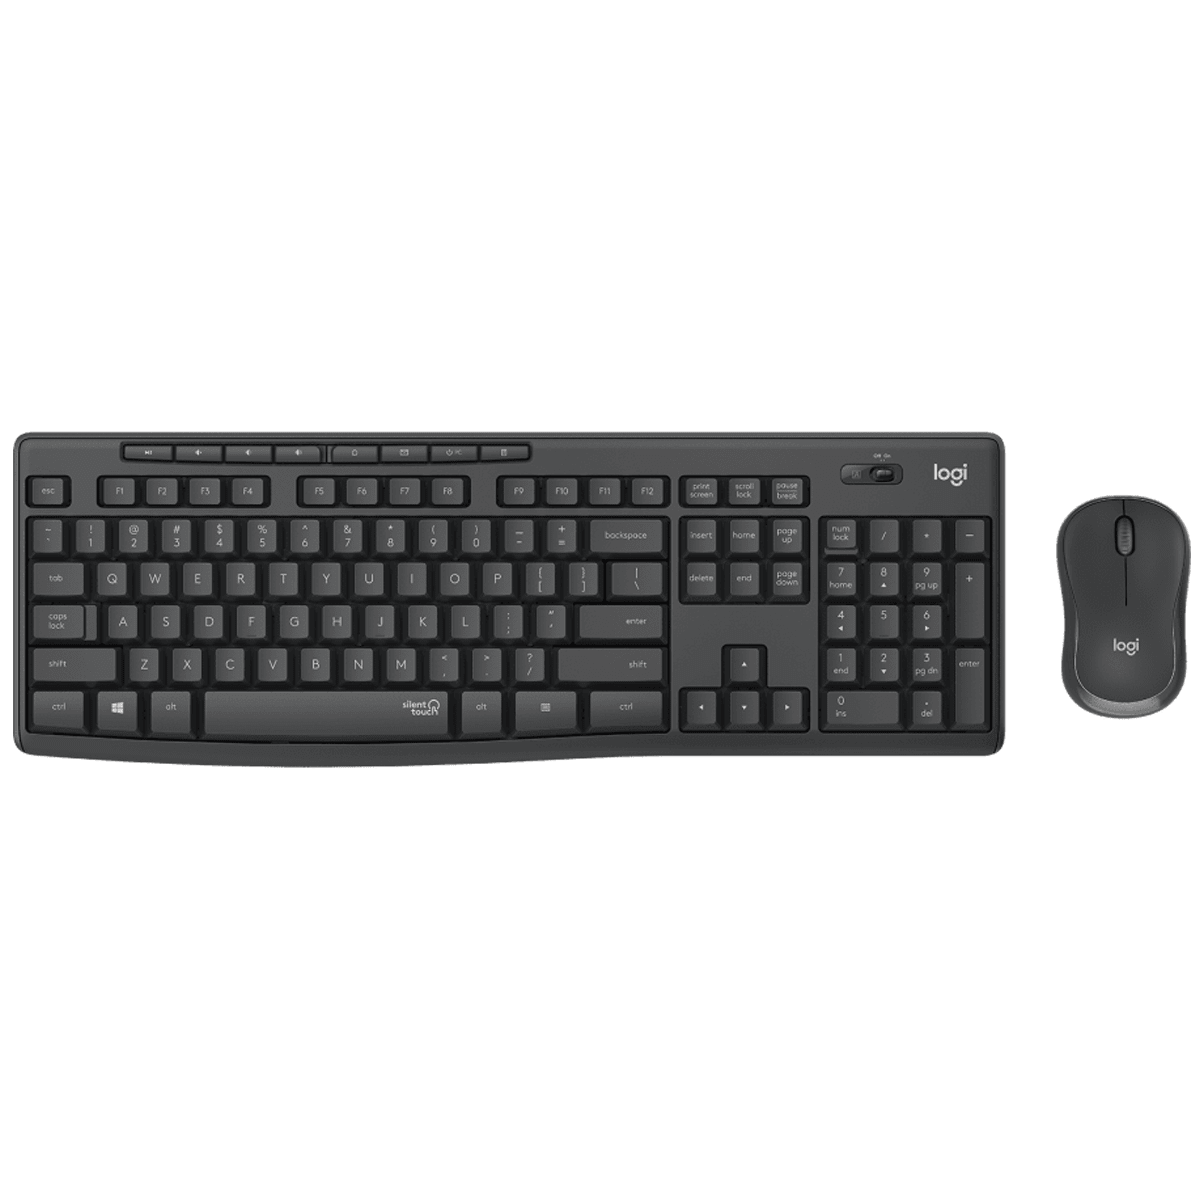 Logitech Wireless Keyboard and Mouse Combo (Less Noise, MK295 Silent, Black)